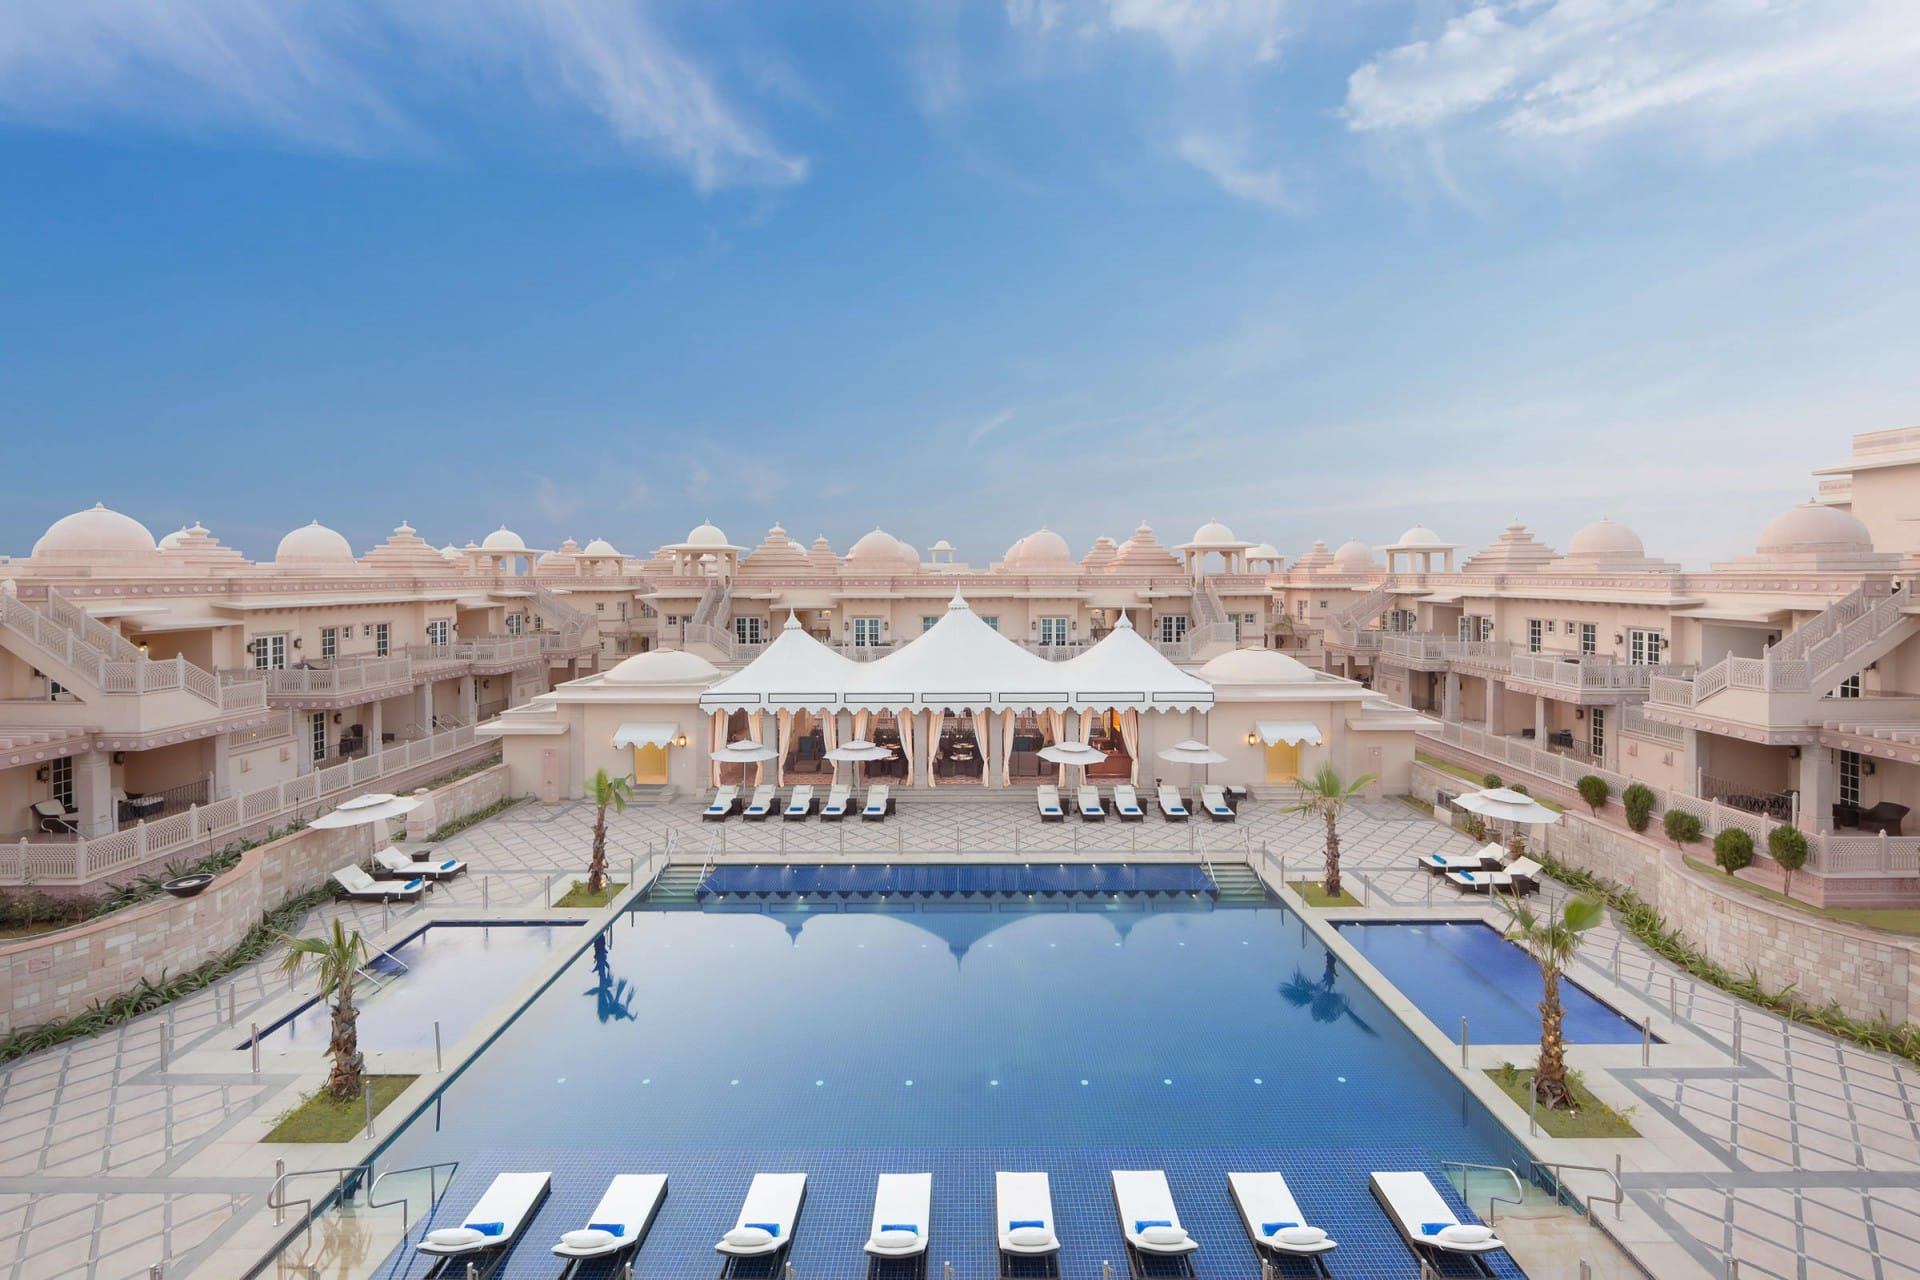 Best Architecture Photographer Delhi India | Collection of Luxury Facade Swimming Pool Photography